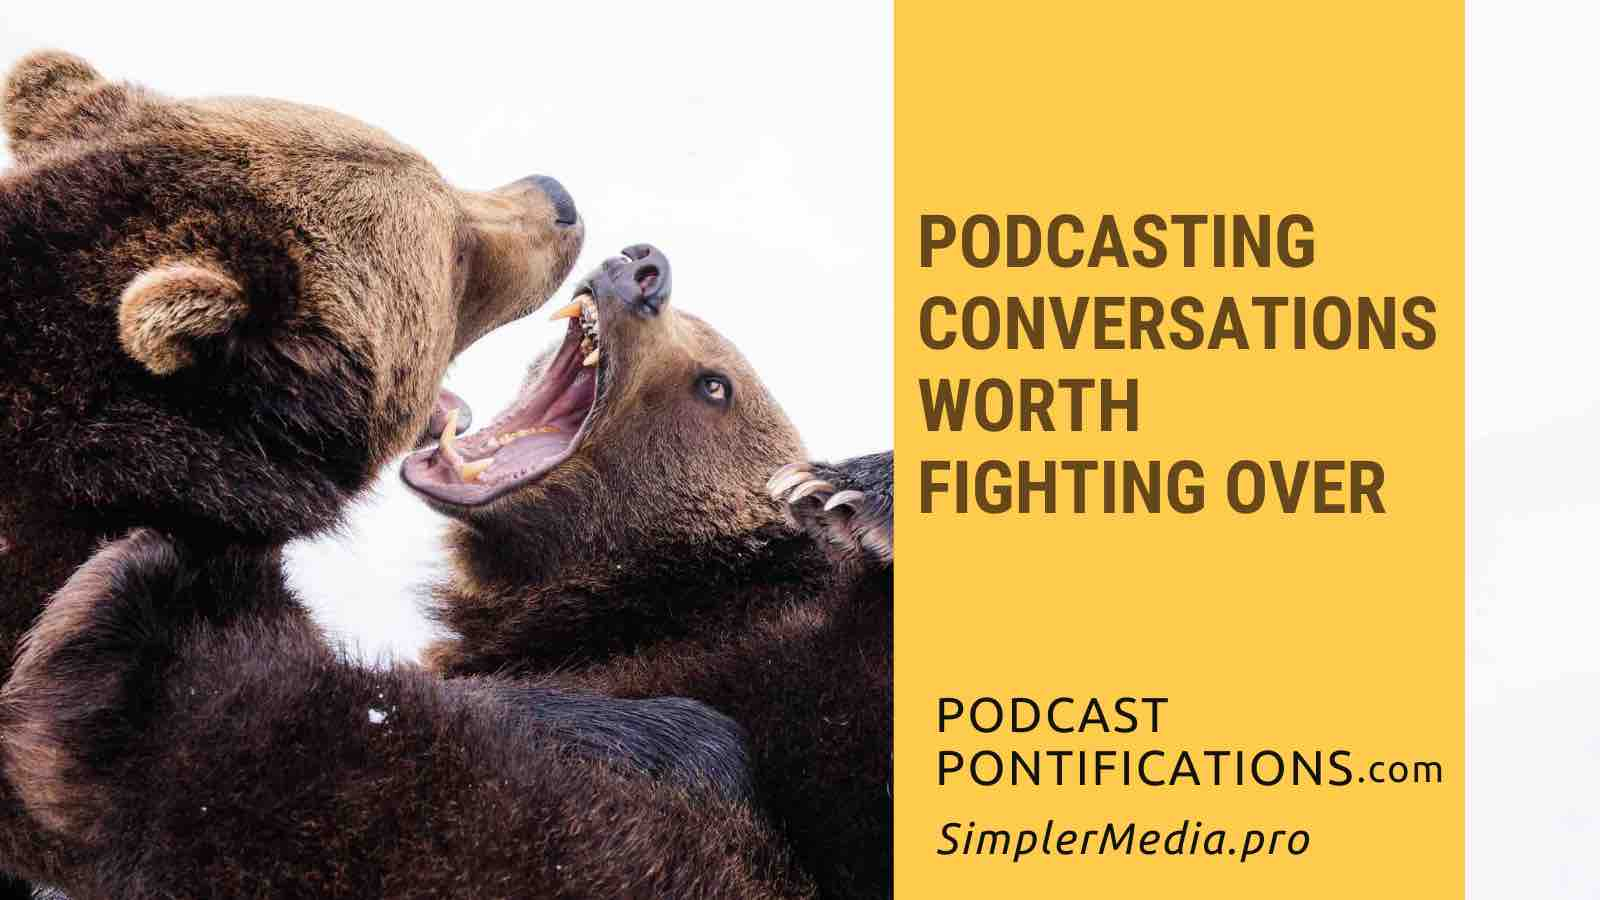 Podcasting Conversations Worth Fighting Over